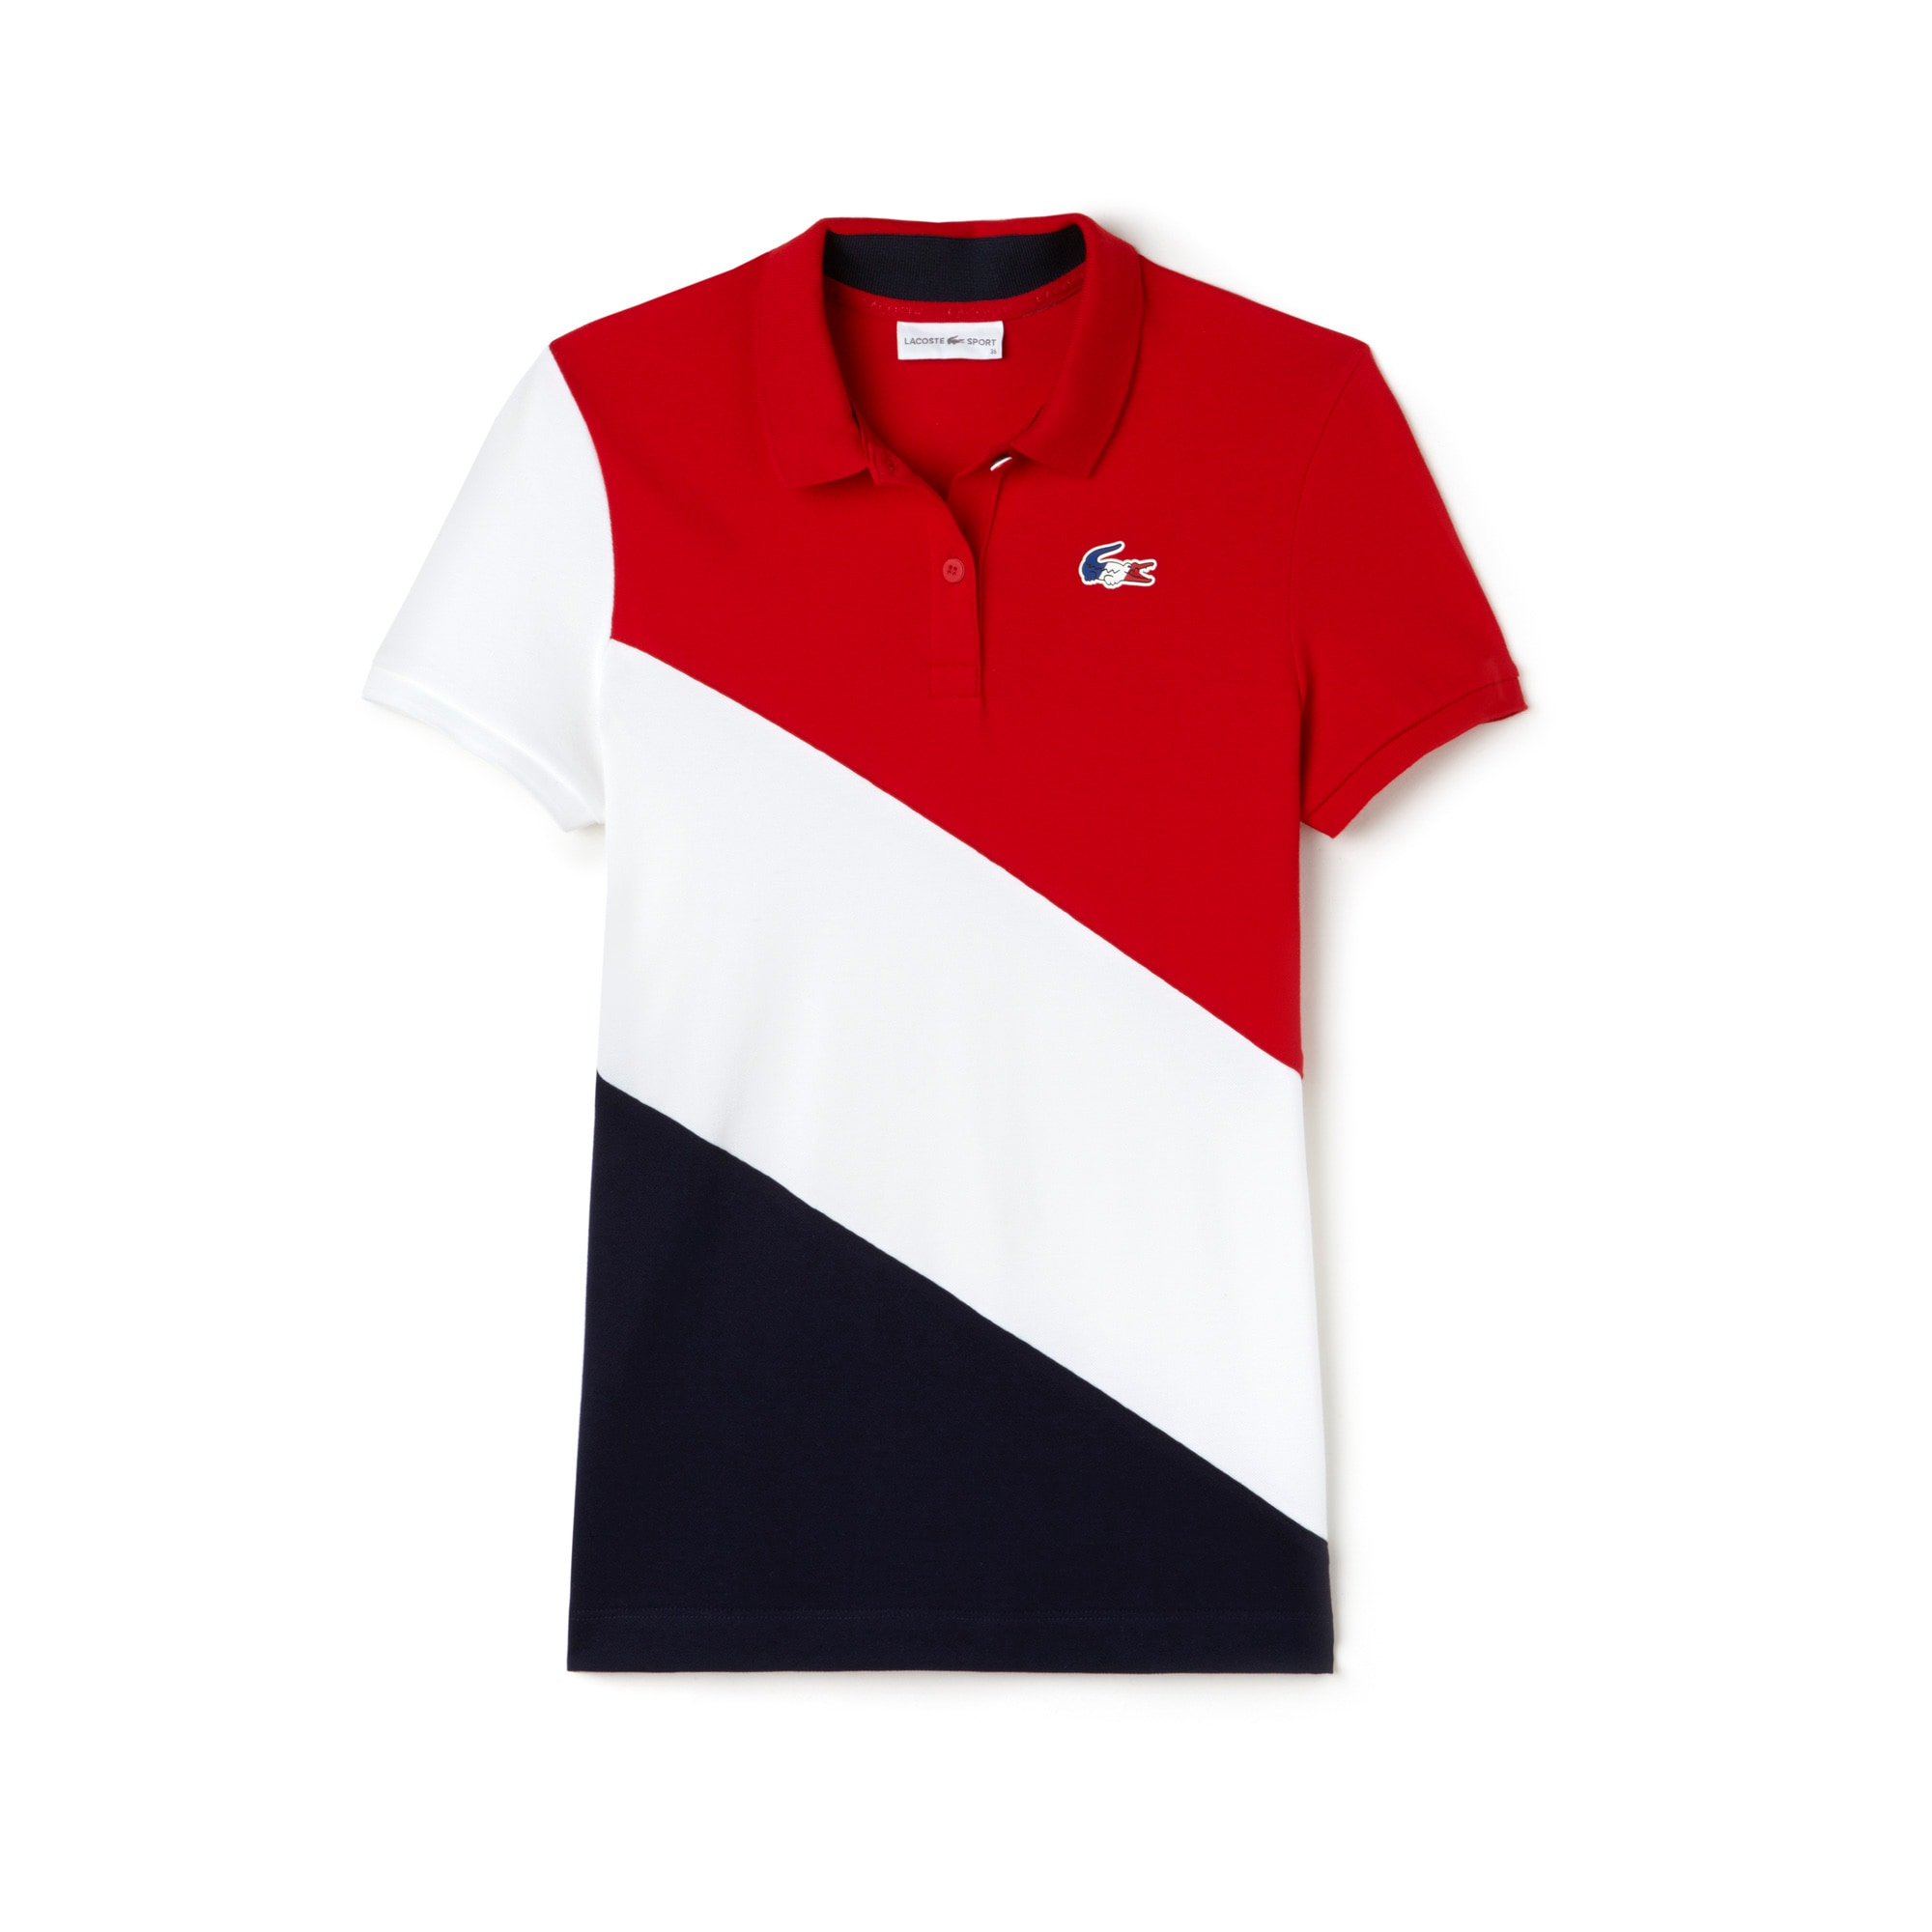 Women's Lacoste FRENCH SPORTING SPIRIT Edition Colorblock Mini Piqué Polo